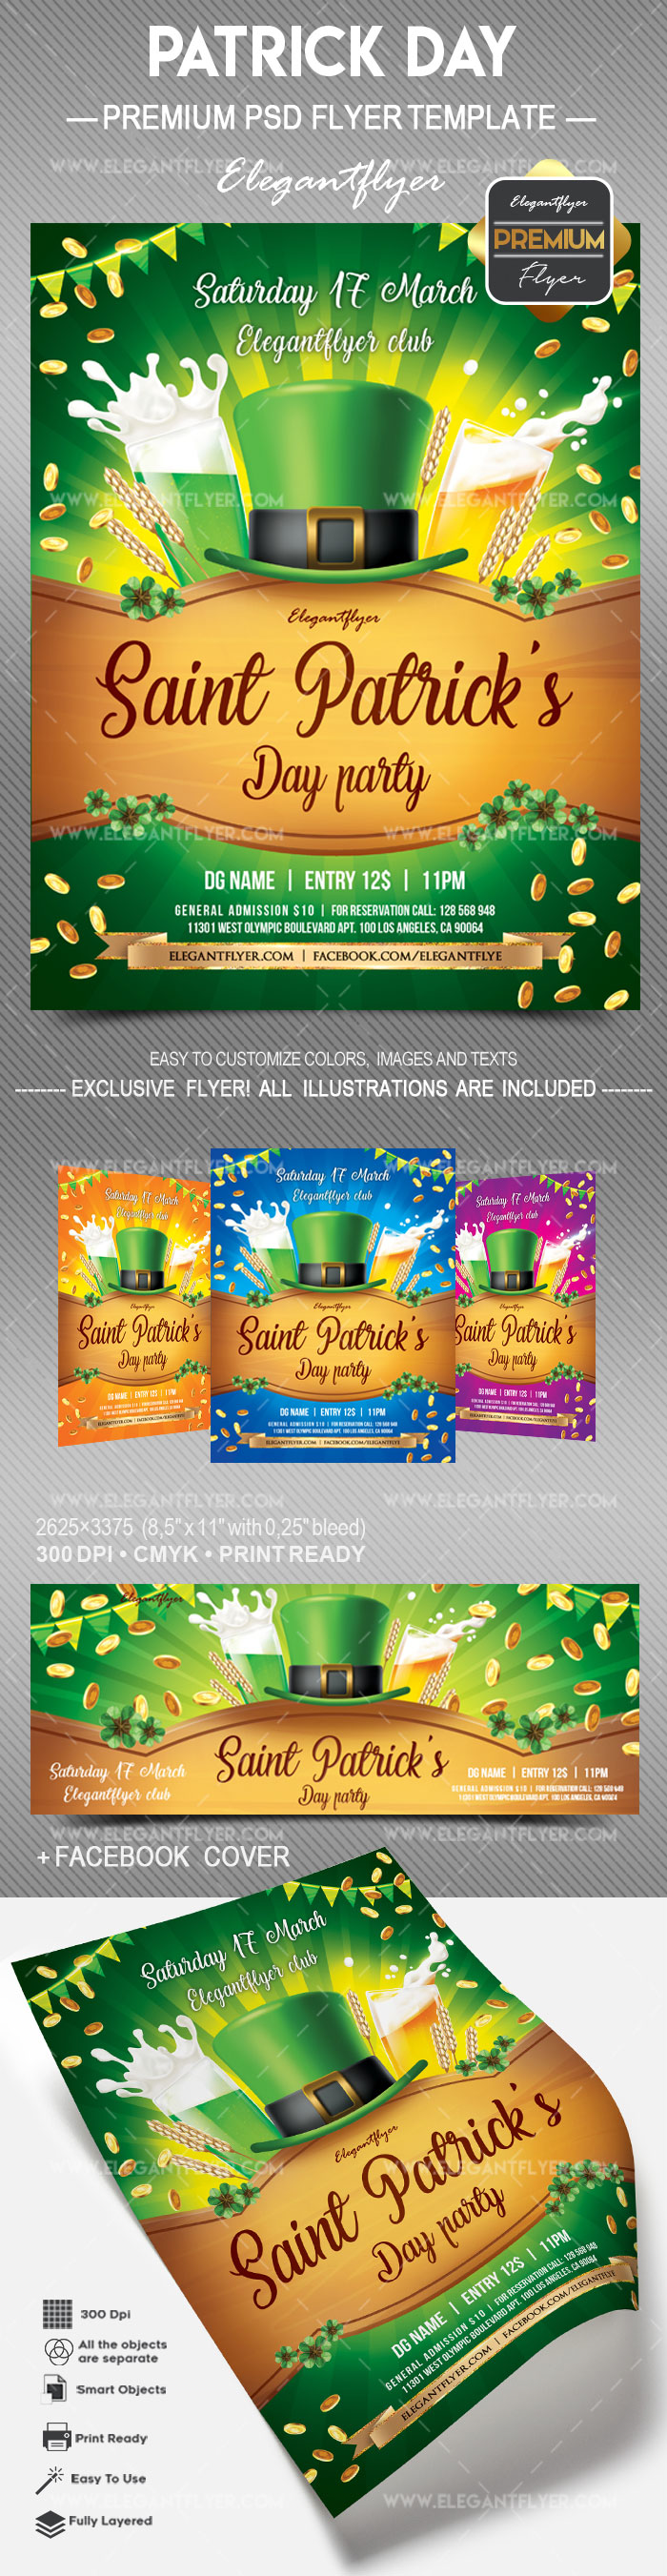 st  patrick day party  u2013 flyer psd template  u2013 by elegantflyer